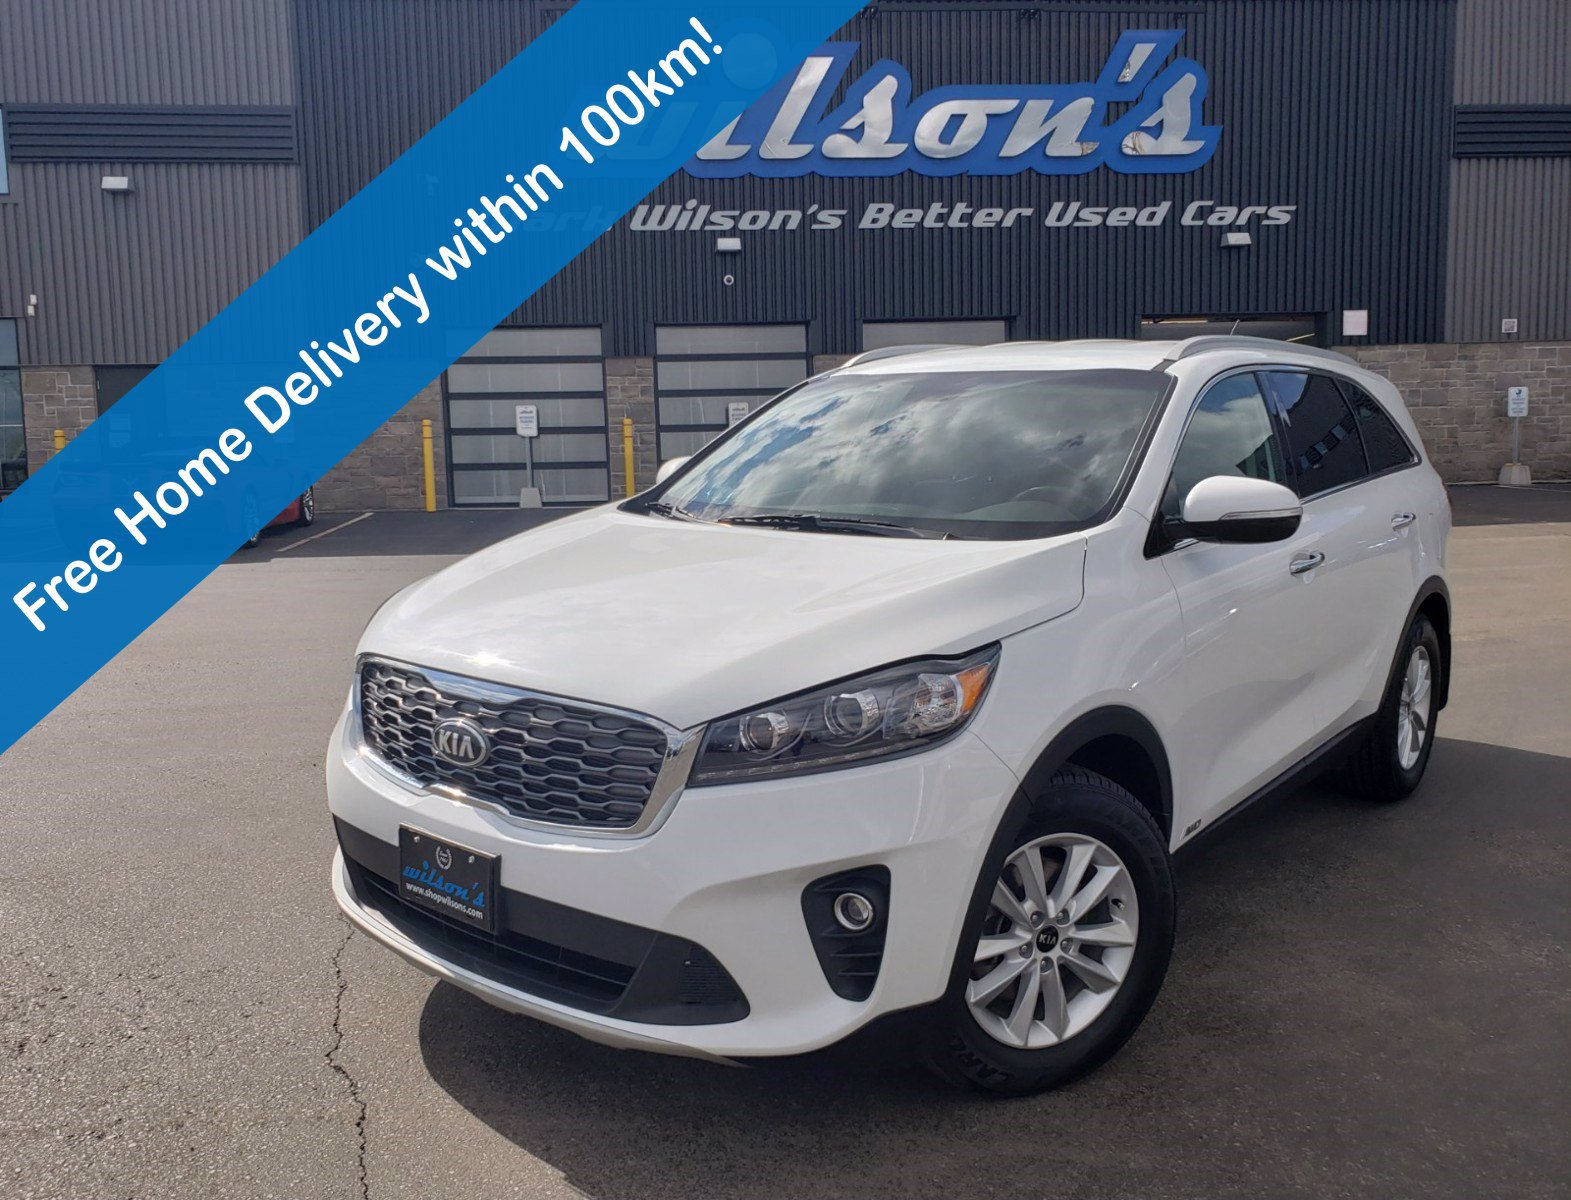 Certified Pre-Owned 2019 Kia Sorento EX AWD, Leather, 7 Passenger, Heated Steering & Seats, Rear Camera, Bluetooth & More!